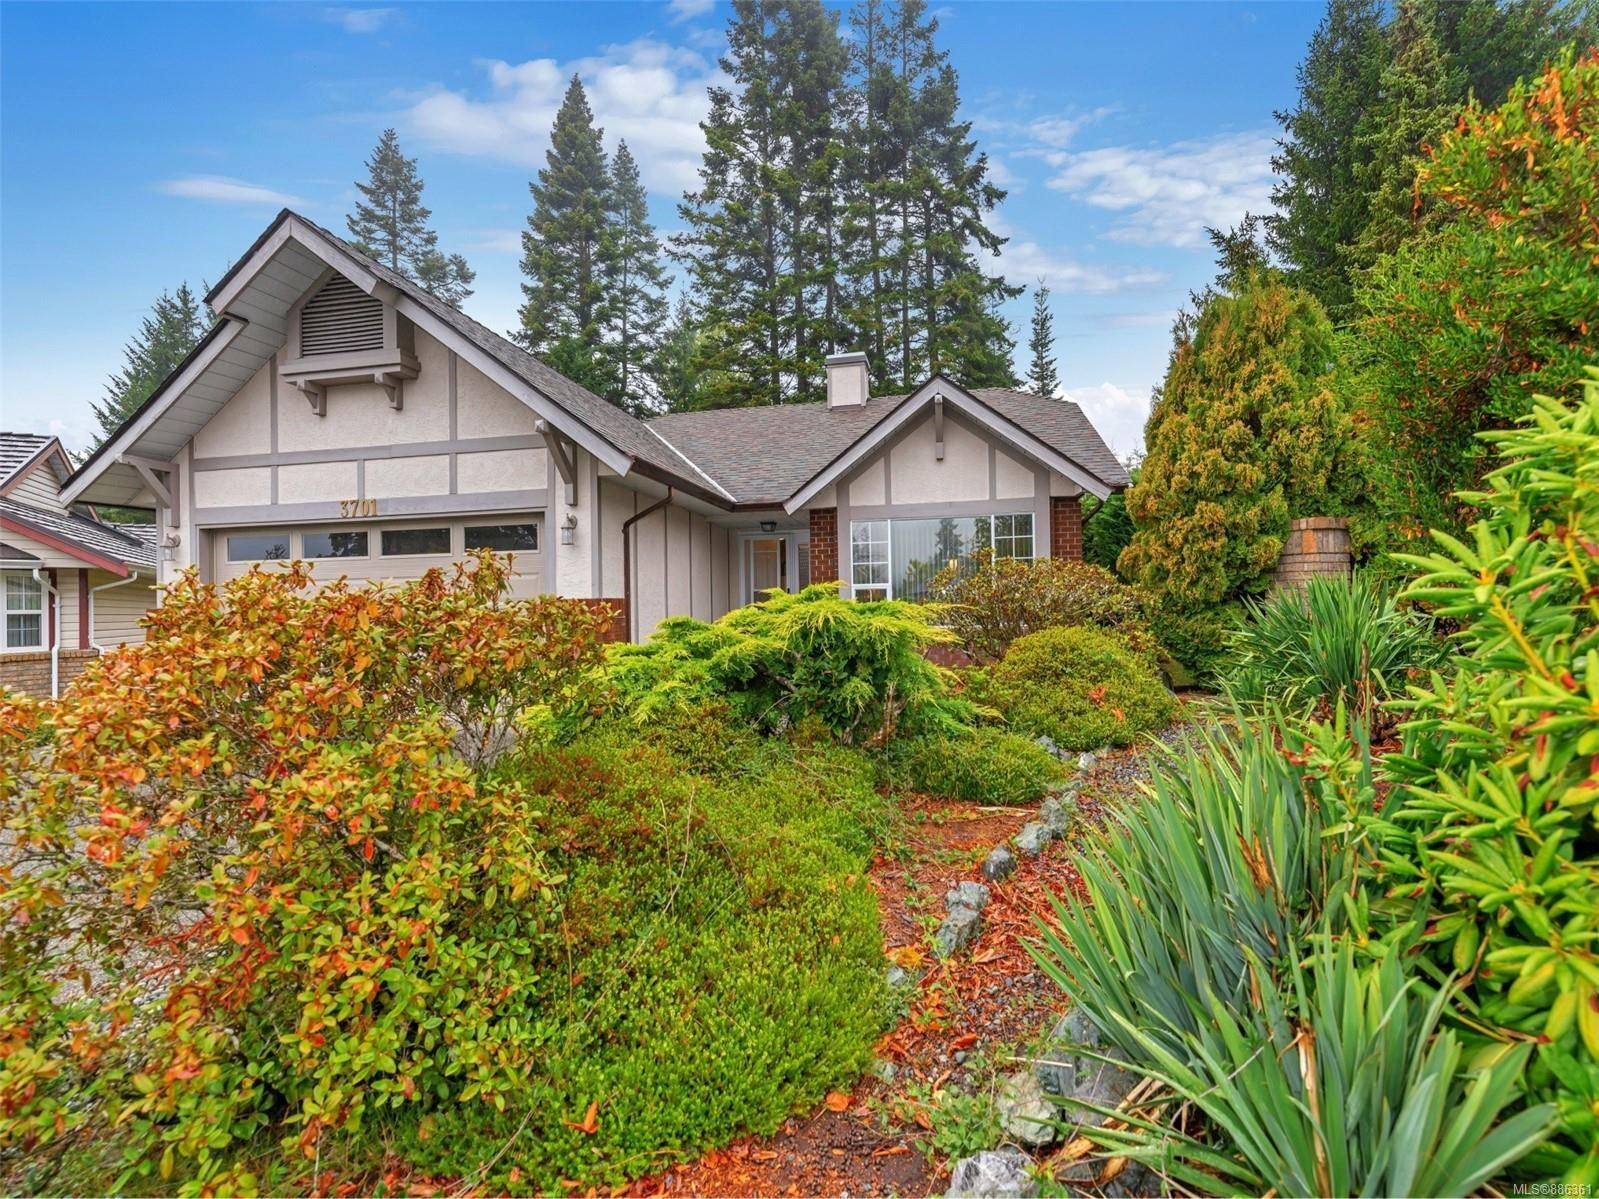 Main Photo: 3701 N Arbutus Dr in Cobble Hill: ML Cobble Hill House for sale (Malahat & Area)  : MLS®# 886361